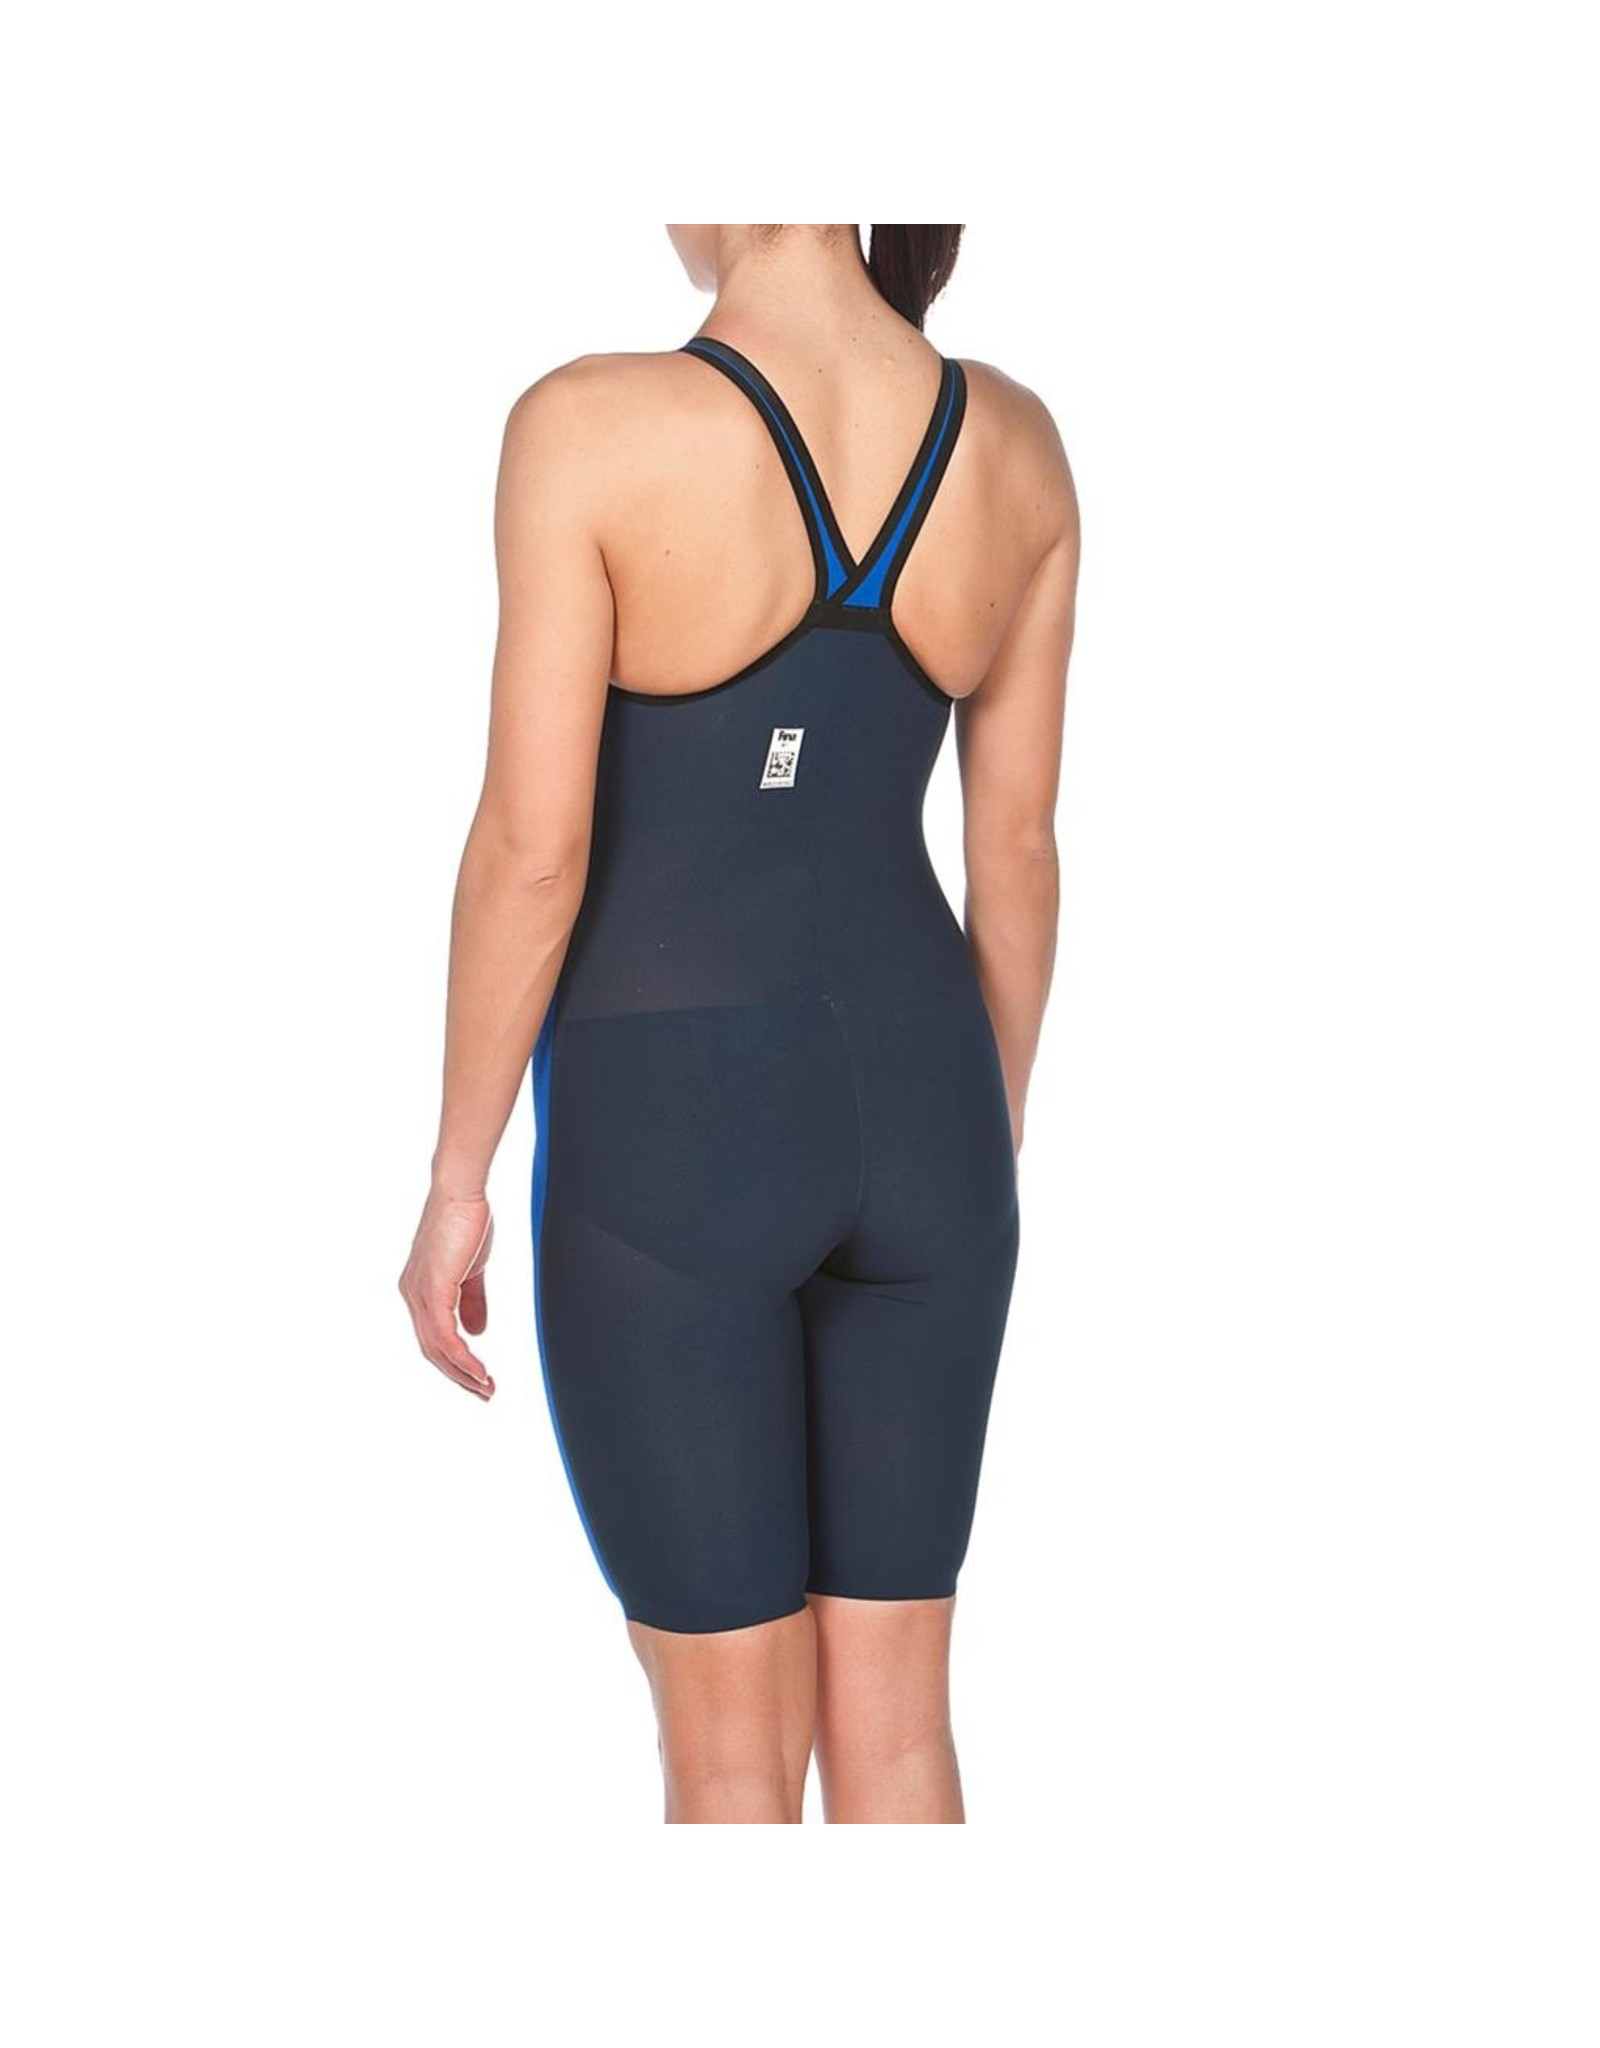 ARENA ARENA CARBON AIR FEMALE CLOSED BACK